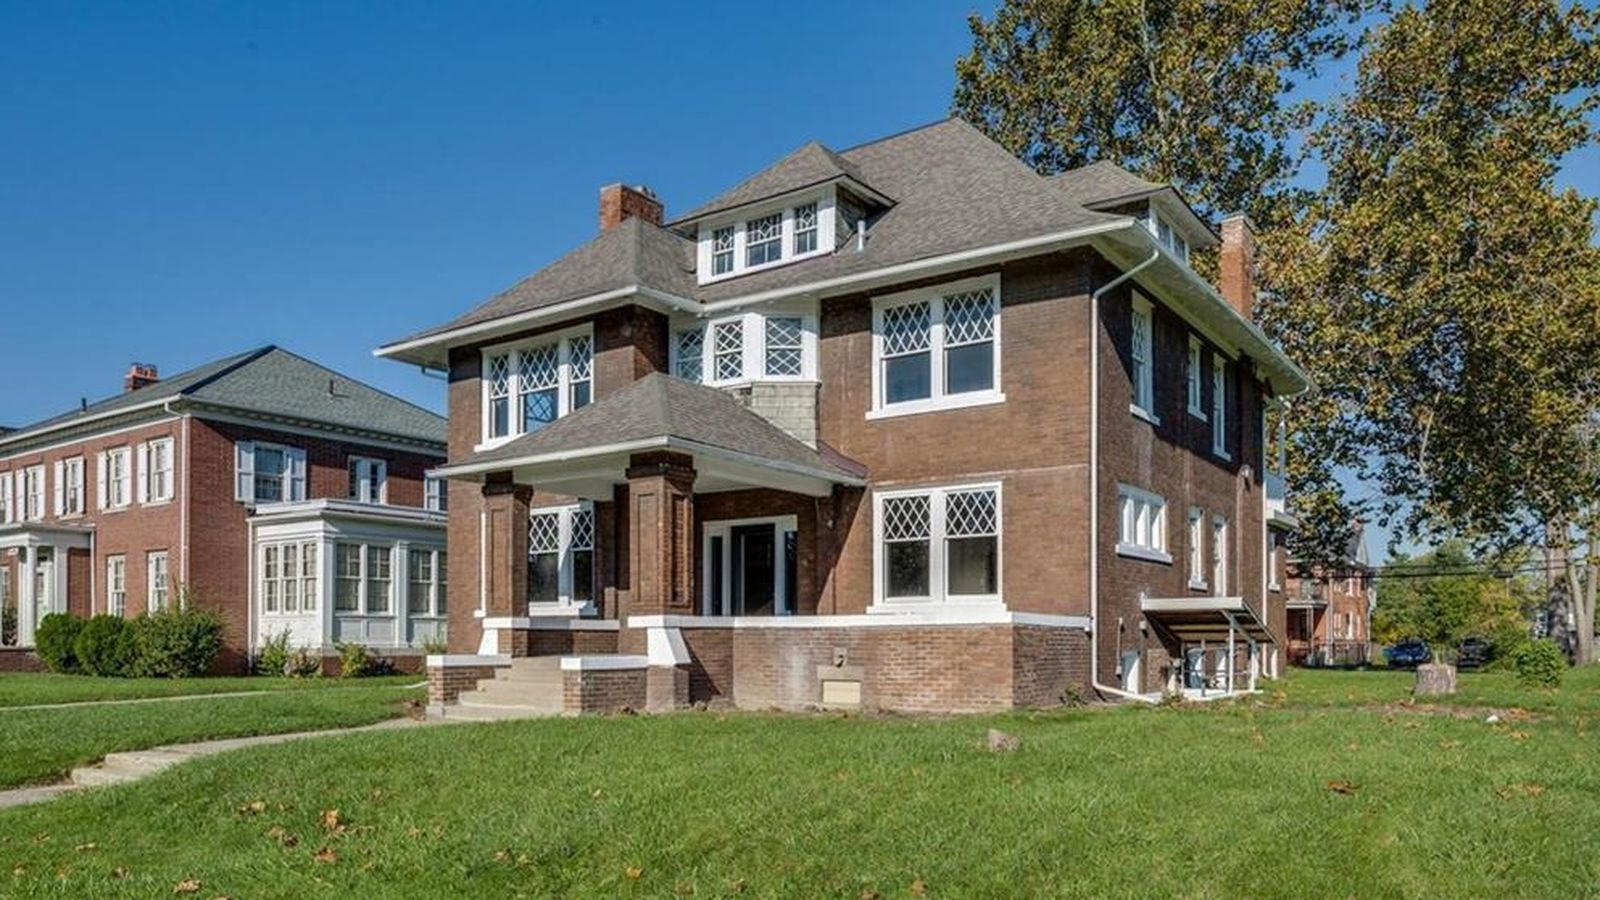 new center home undergoes massive renovation asks 450k curbed detroit